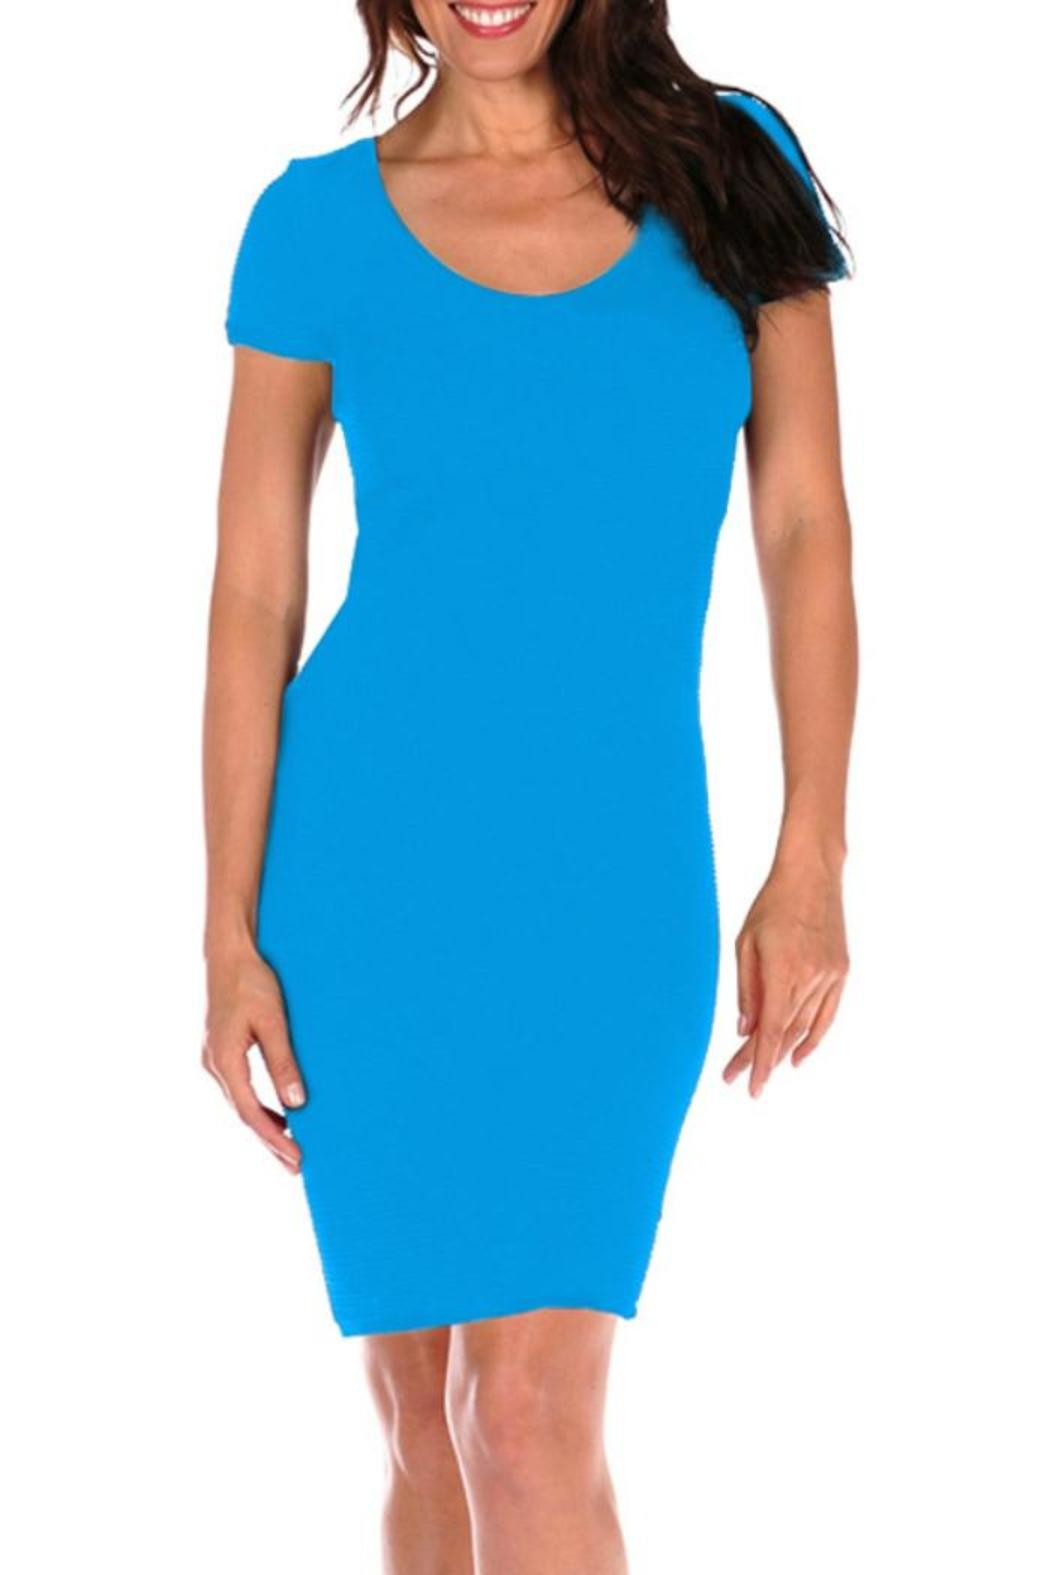 3c64d1a7bb51 Tees by Tina Textured Bandage Dress from Guilford by A's Unique Boutique